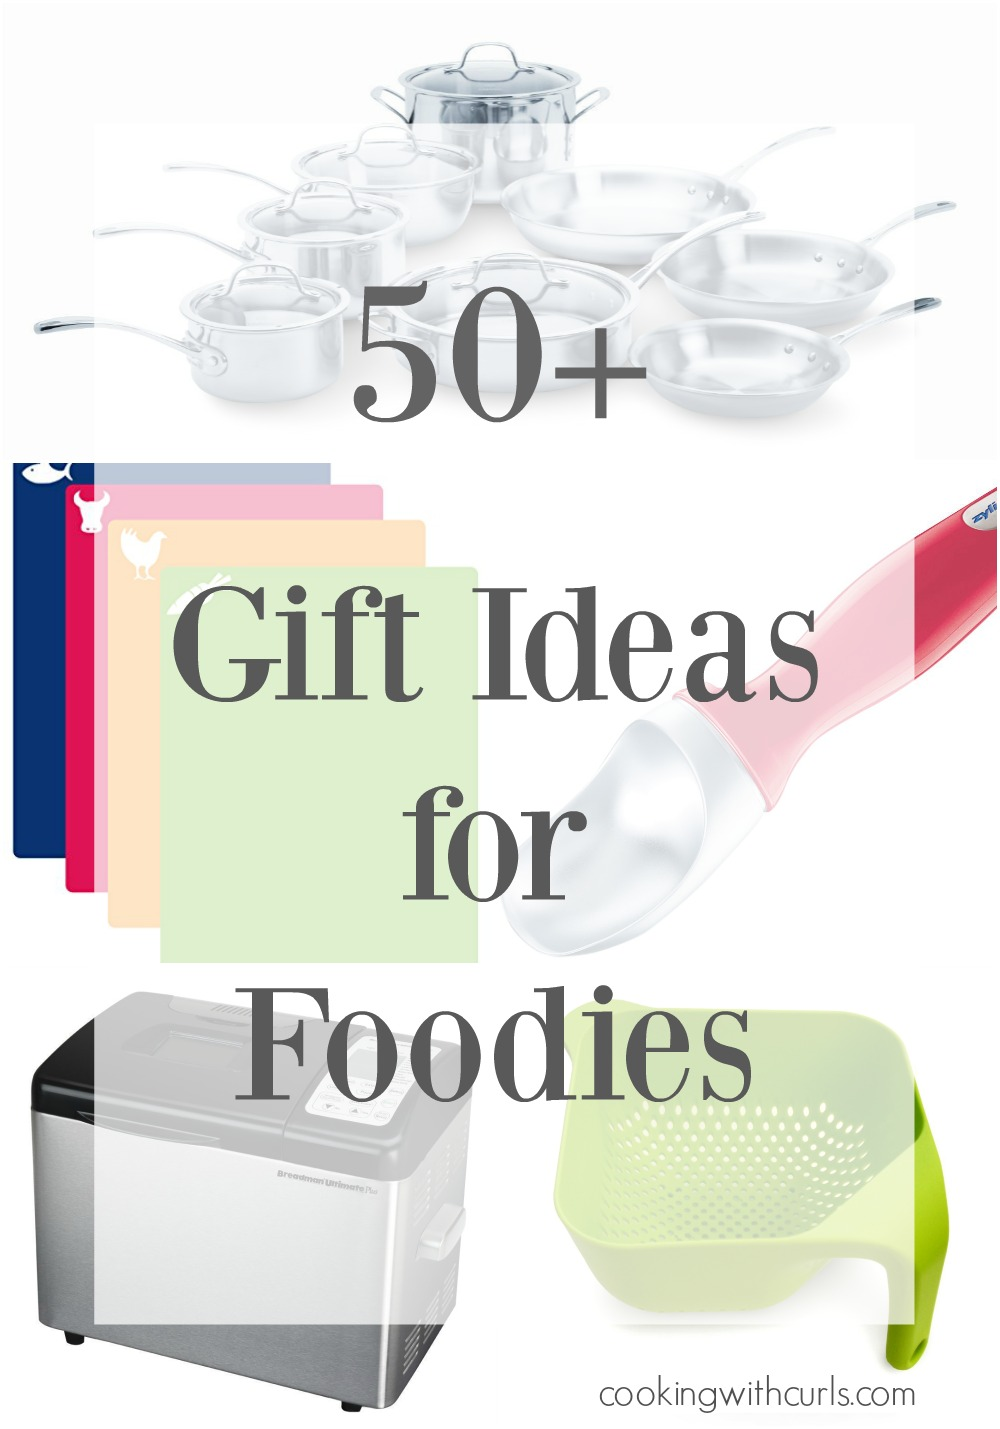 Sparkling Everyone On Your List That Loves To Cook Cookingwithcurls Practical Ideas Ranging From Stocking Stuffers To Dream Gifts 50 Gift Ideas Foodies Ultimate Collection gifts Gifts For Newlyweds